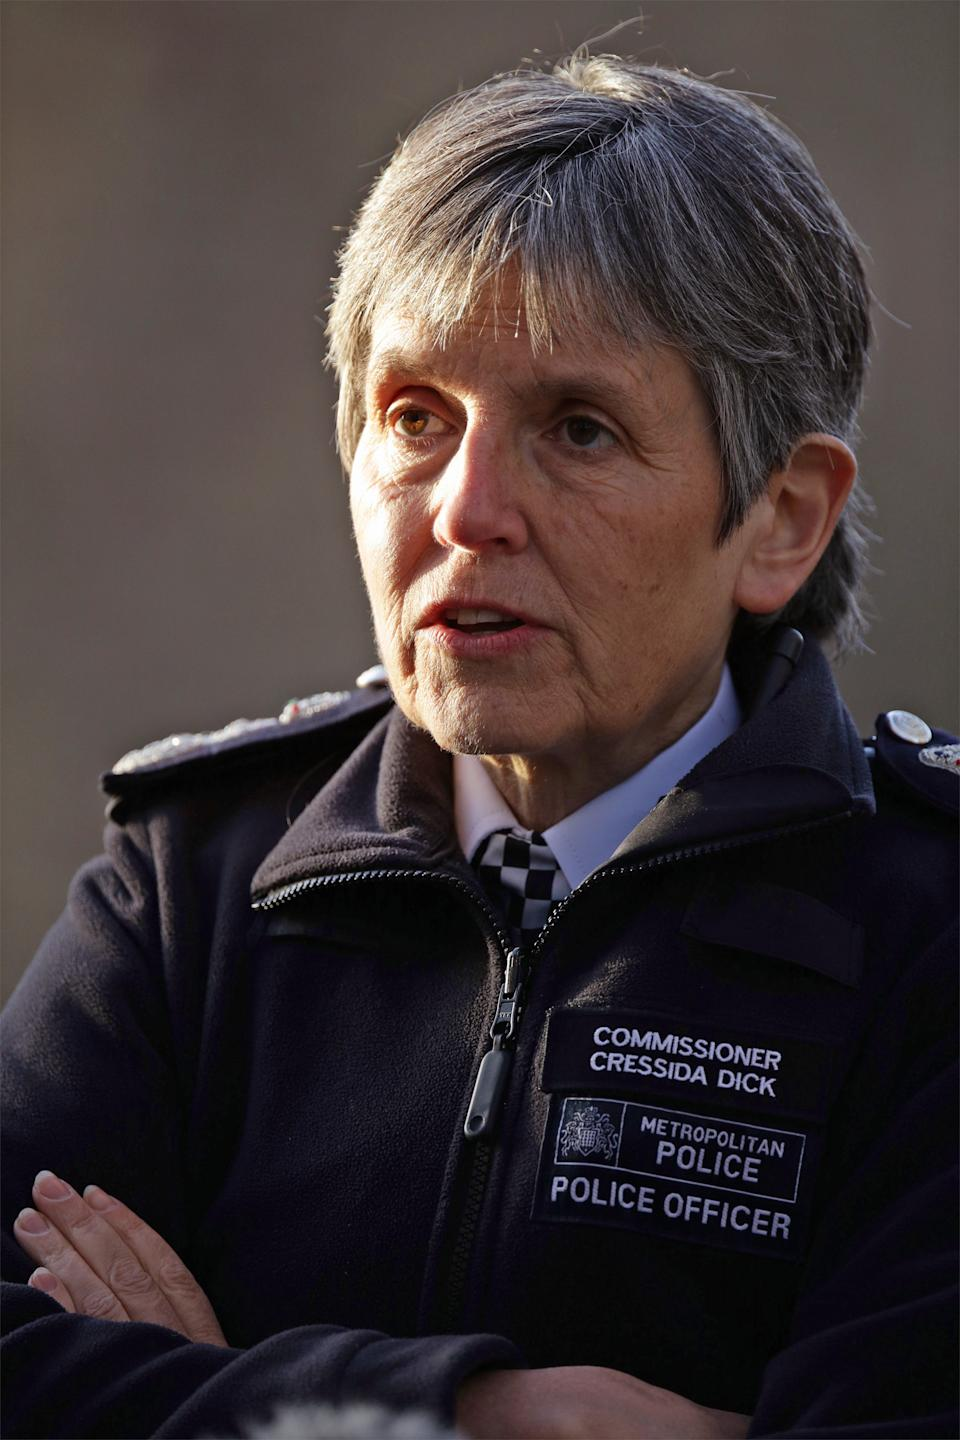 Metropolitan Police Commissioner Cressida Dick attending a raid at an address in Islington, in north London, by the Metropolitan Police flying squad, investigating a high value jewellery burglary. (Photo by Yui Mok/PA Images via Getty Images)